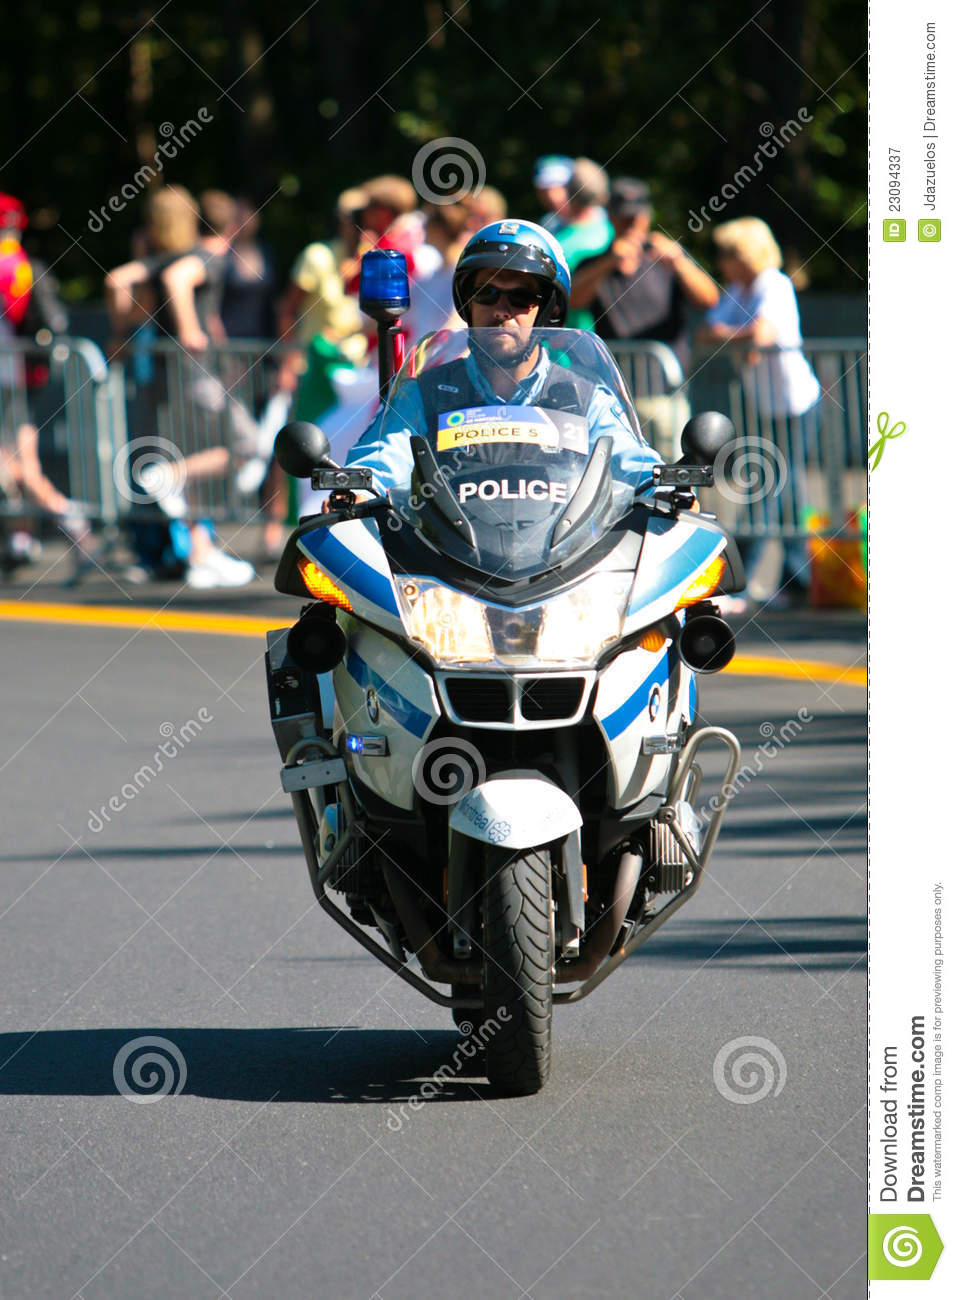 Canadian Police Officer On A Motor Bike Editorial Photography - Image: 23094337